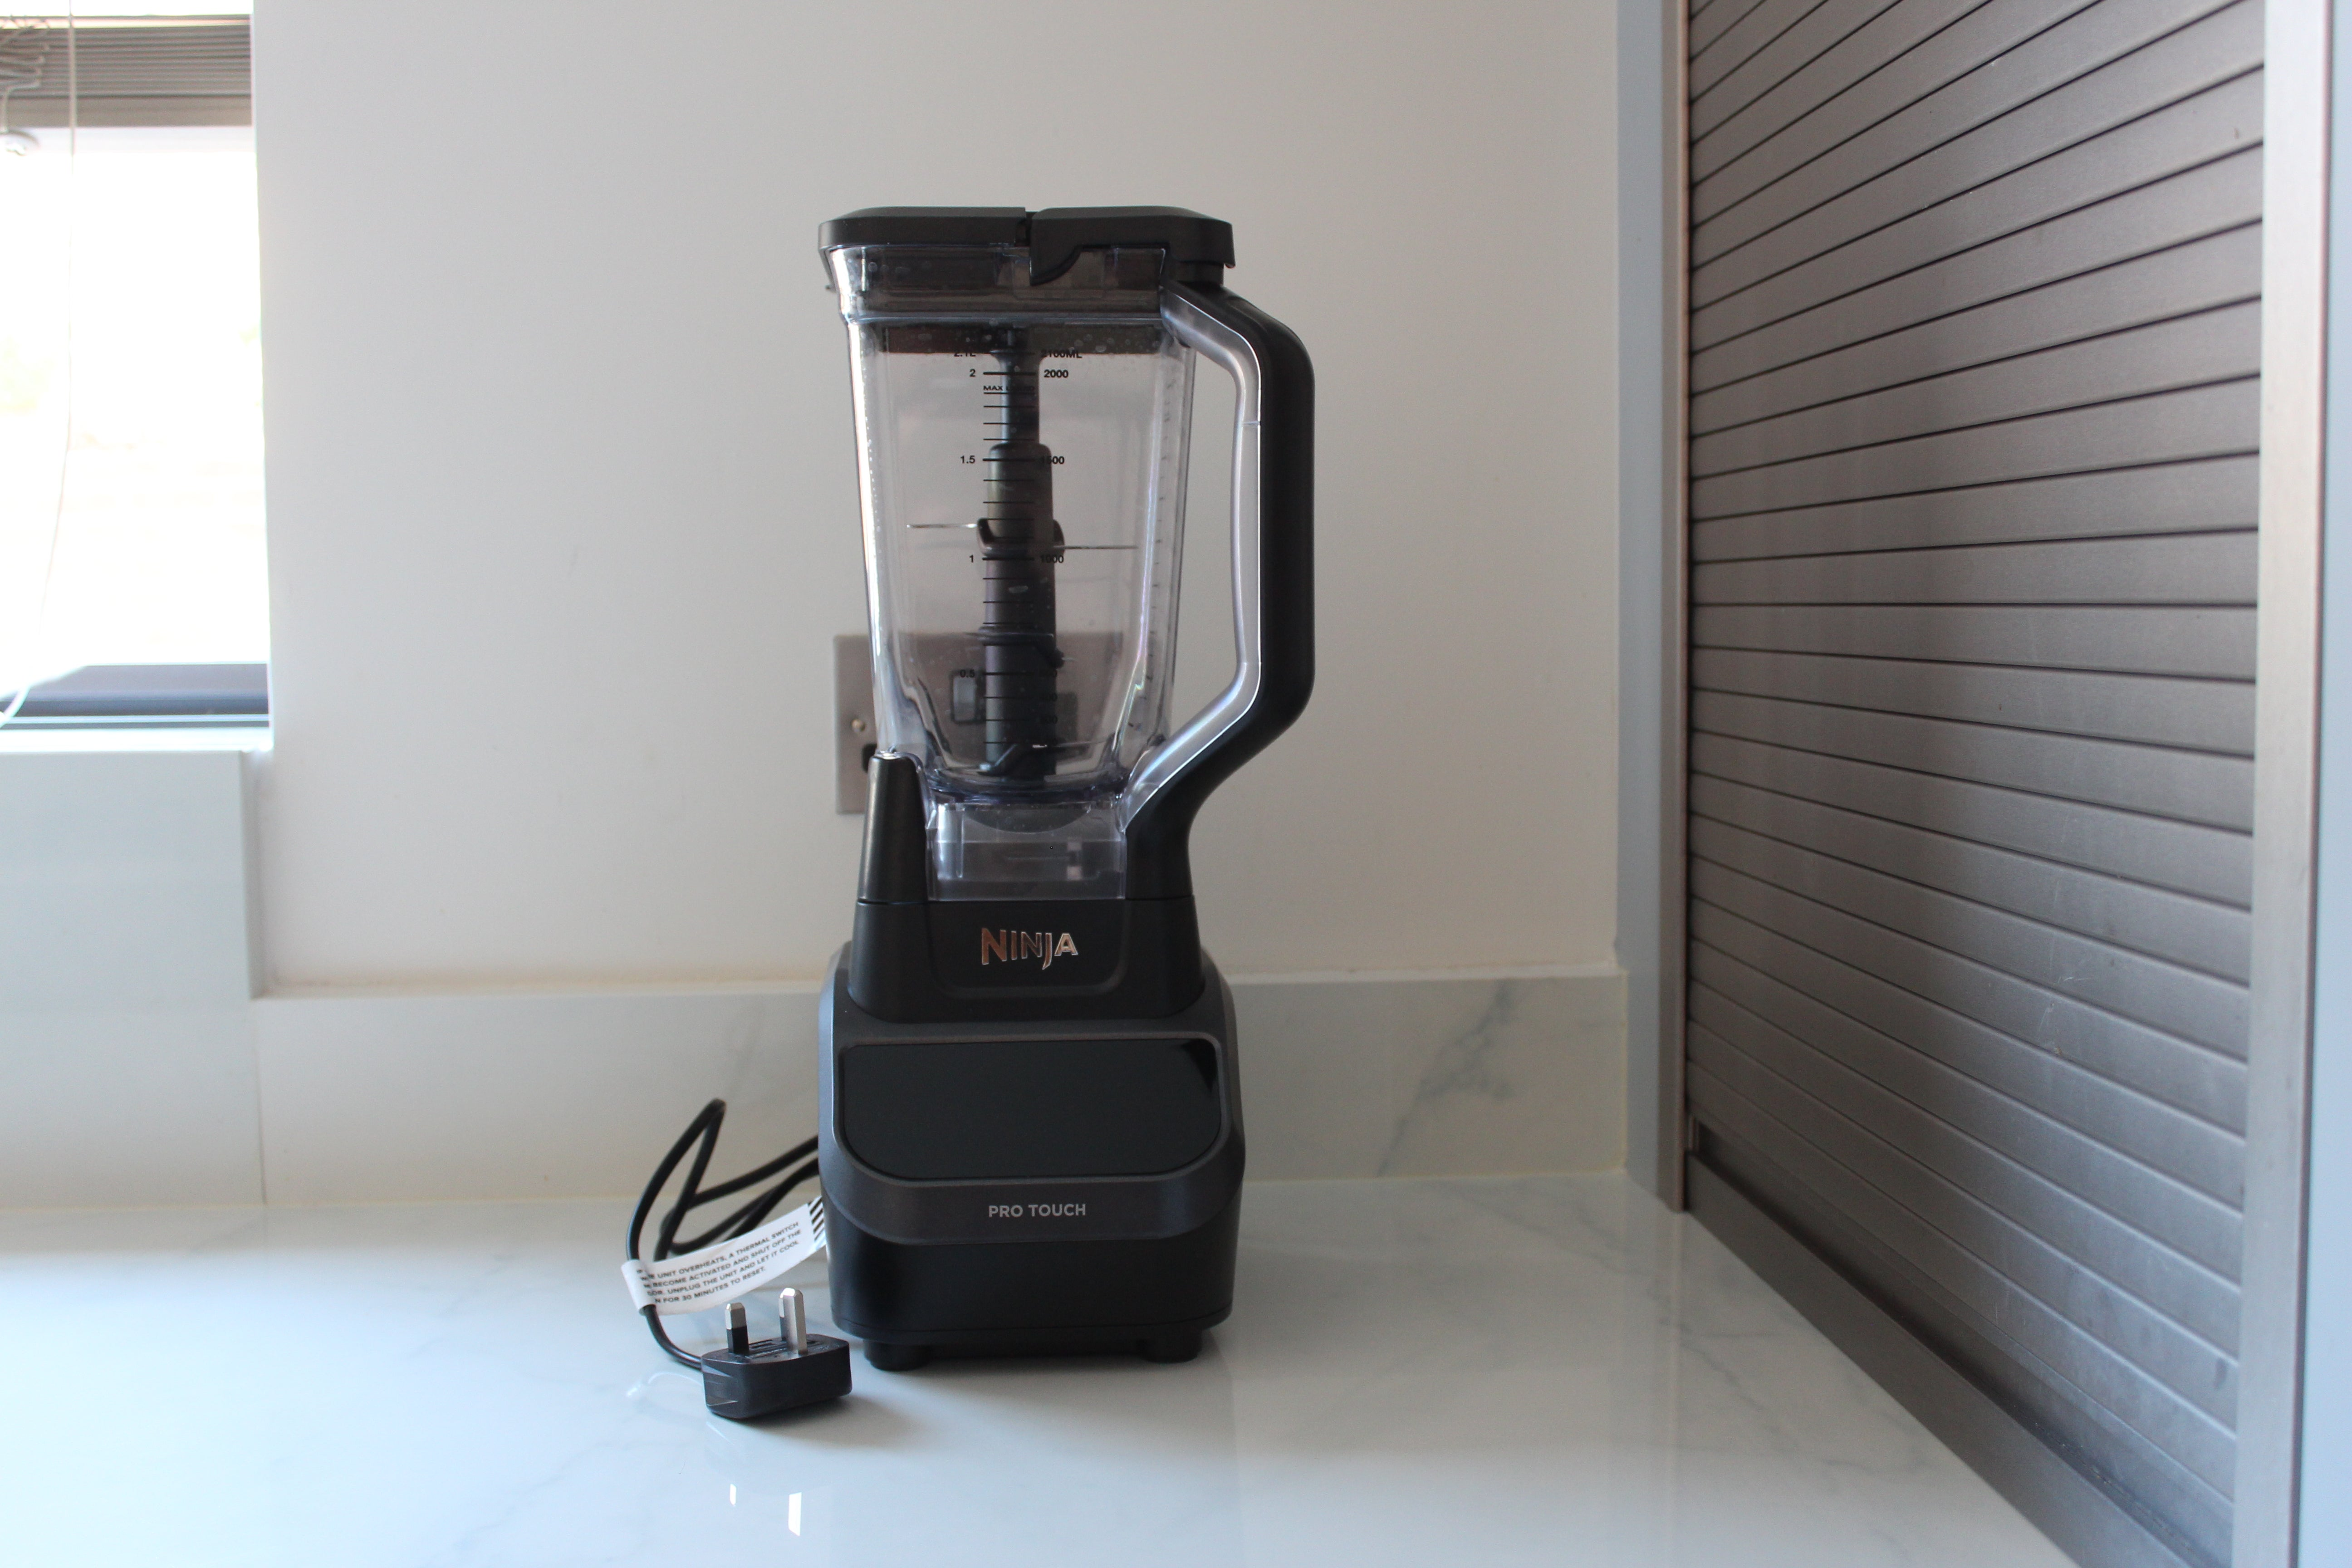 Ninja Multi-Serve Touchscreen Blender CT610UK – Design and features